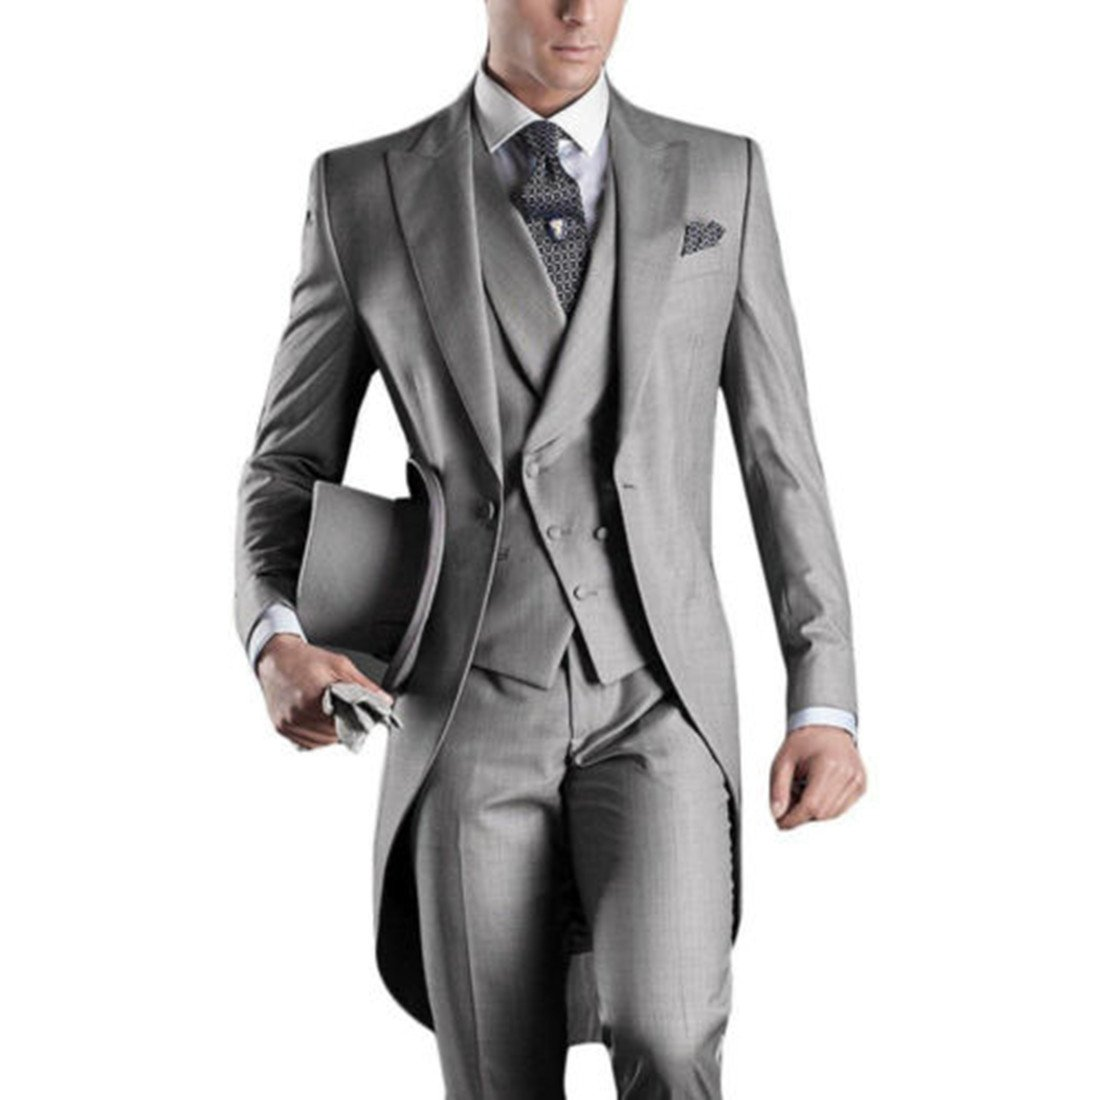 6084f6eb51854b Silver Moonlight Slim Fit Men's Gray Men Wedding Suit Groom Tuxedo Business  Formal Suits at Amazon Men's Clothing store: